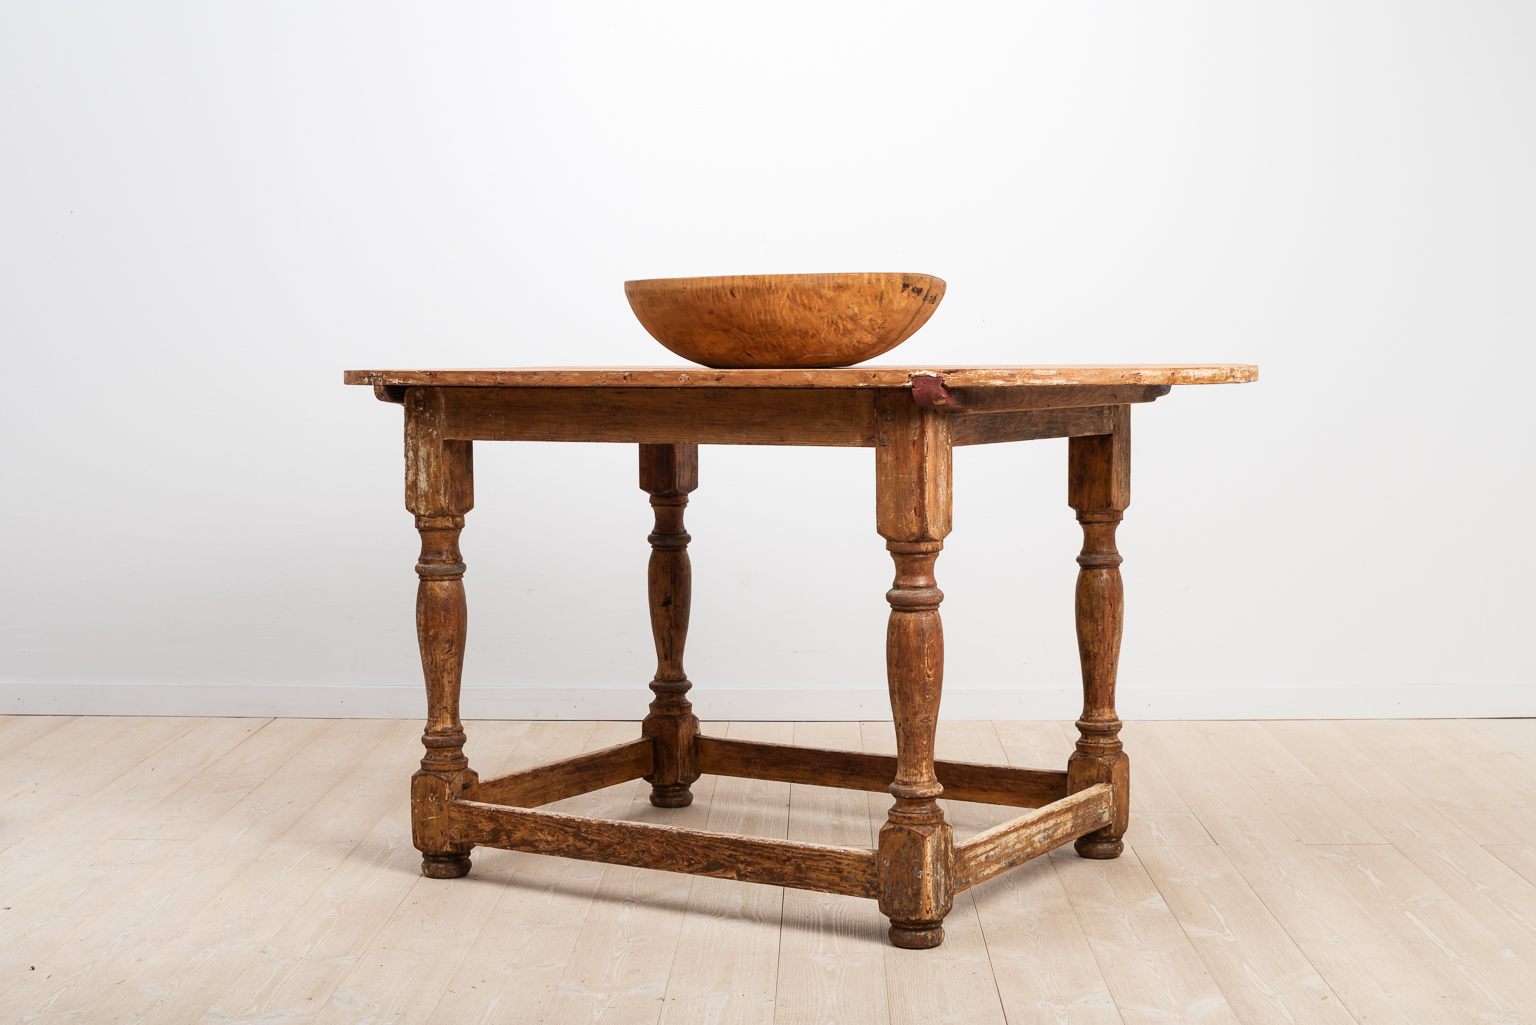 Swedish baroque table in pine with an oval table top.